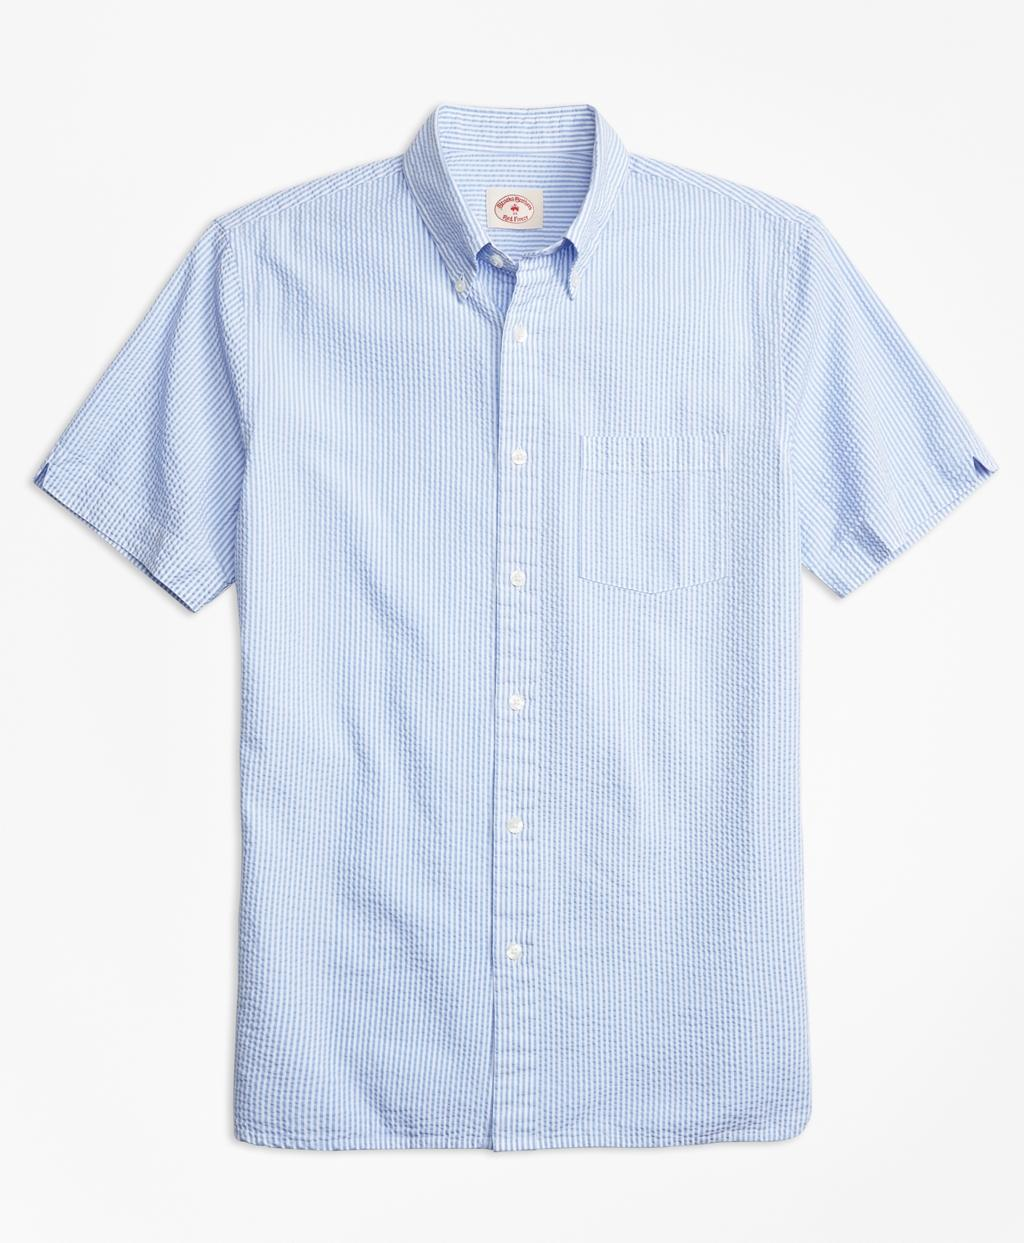 Lyst brooks brothers stripe cotton seersucker short for Mens short sleeve seersucker shirts